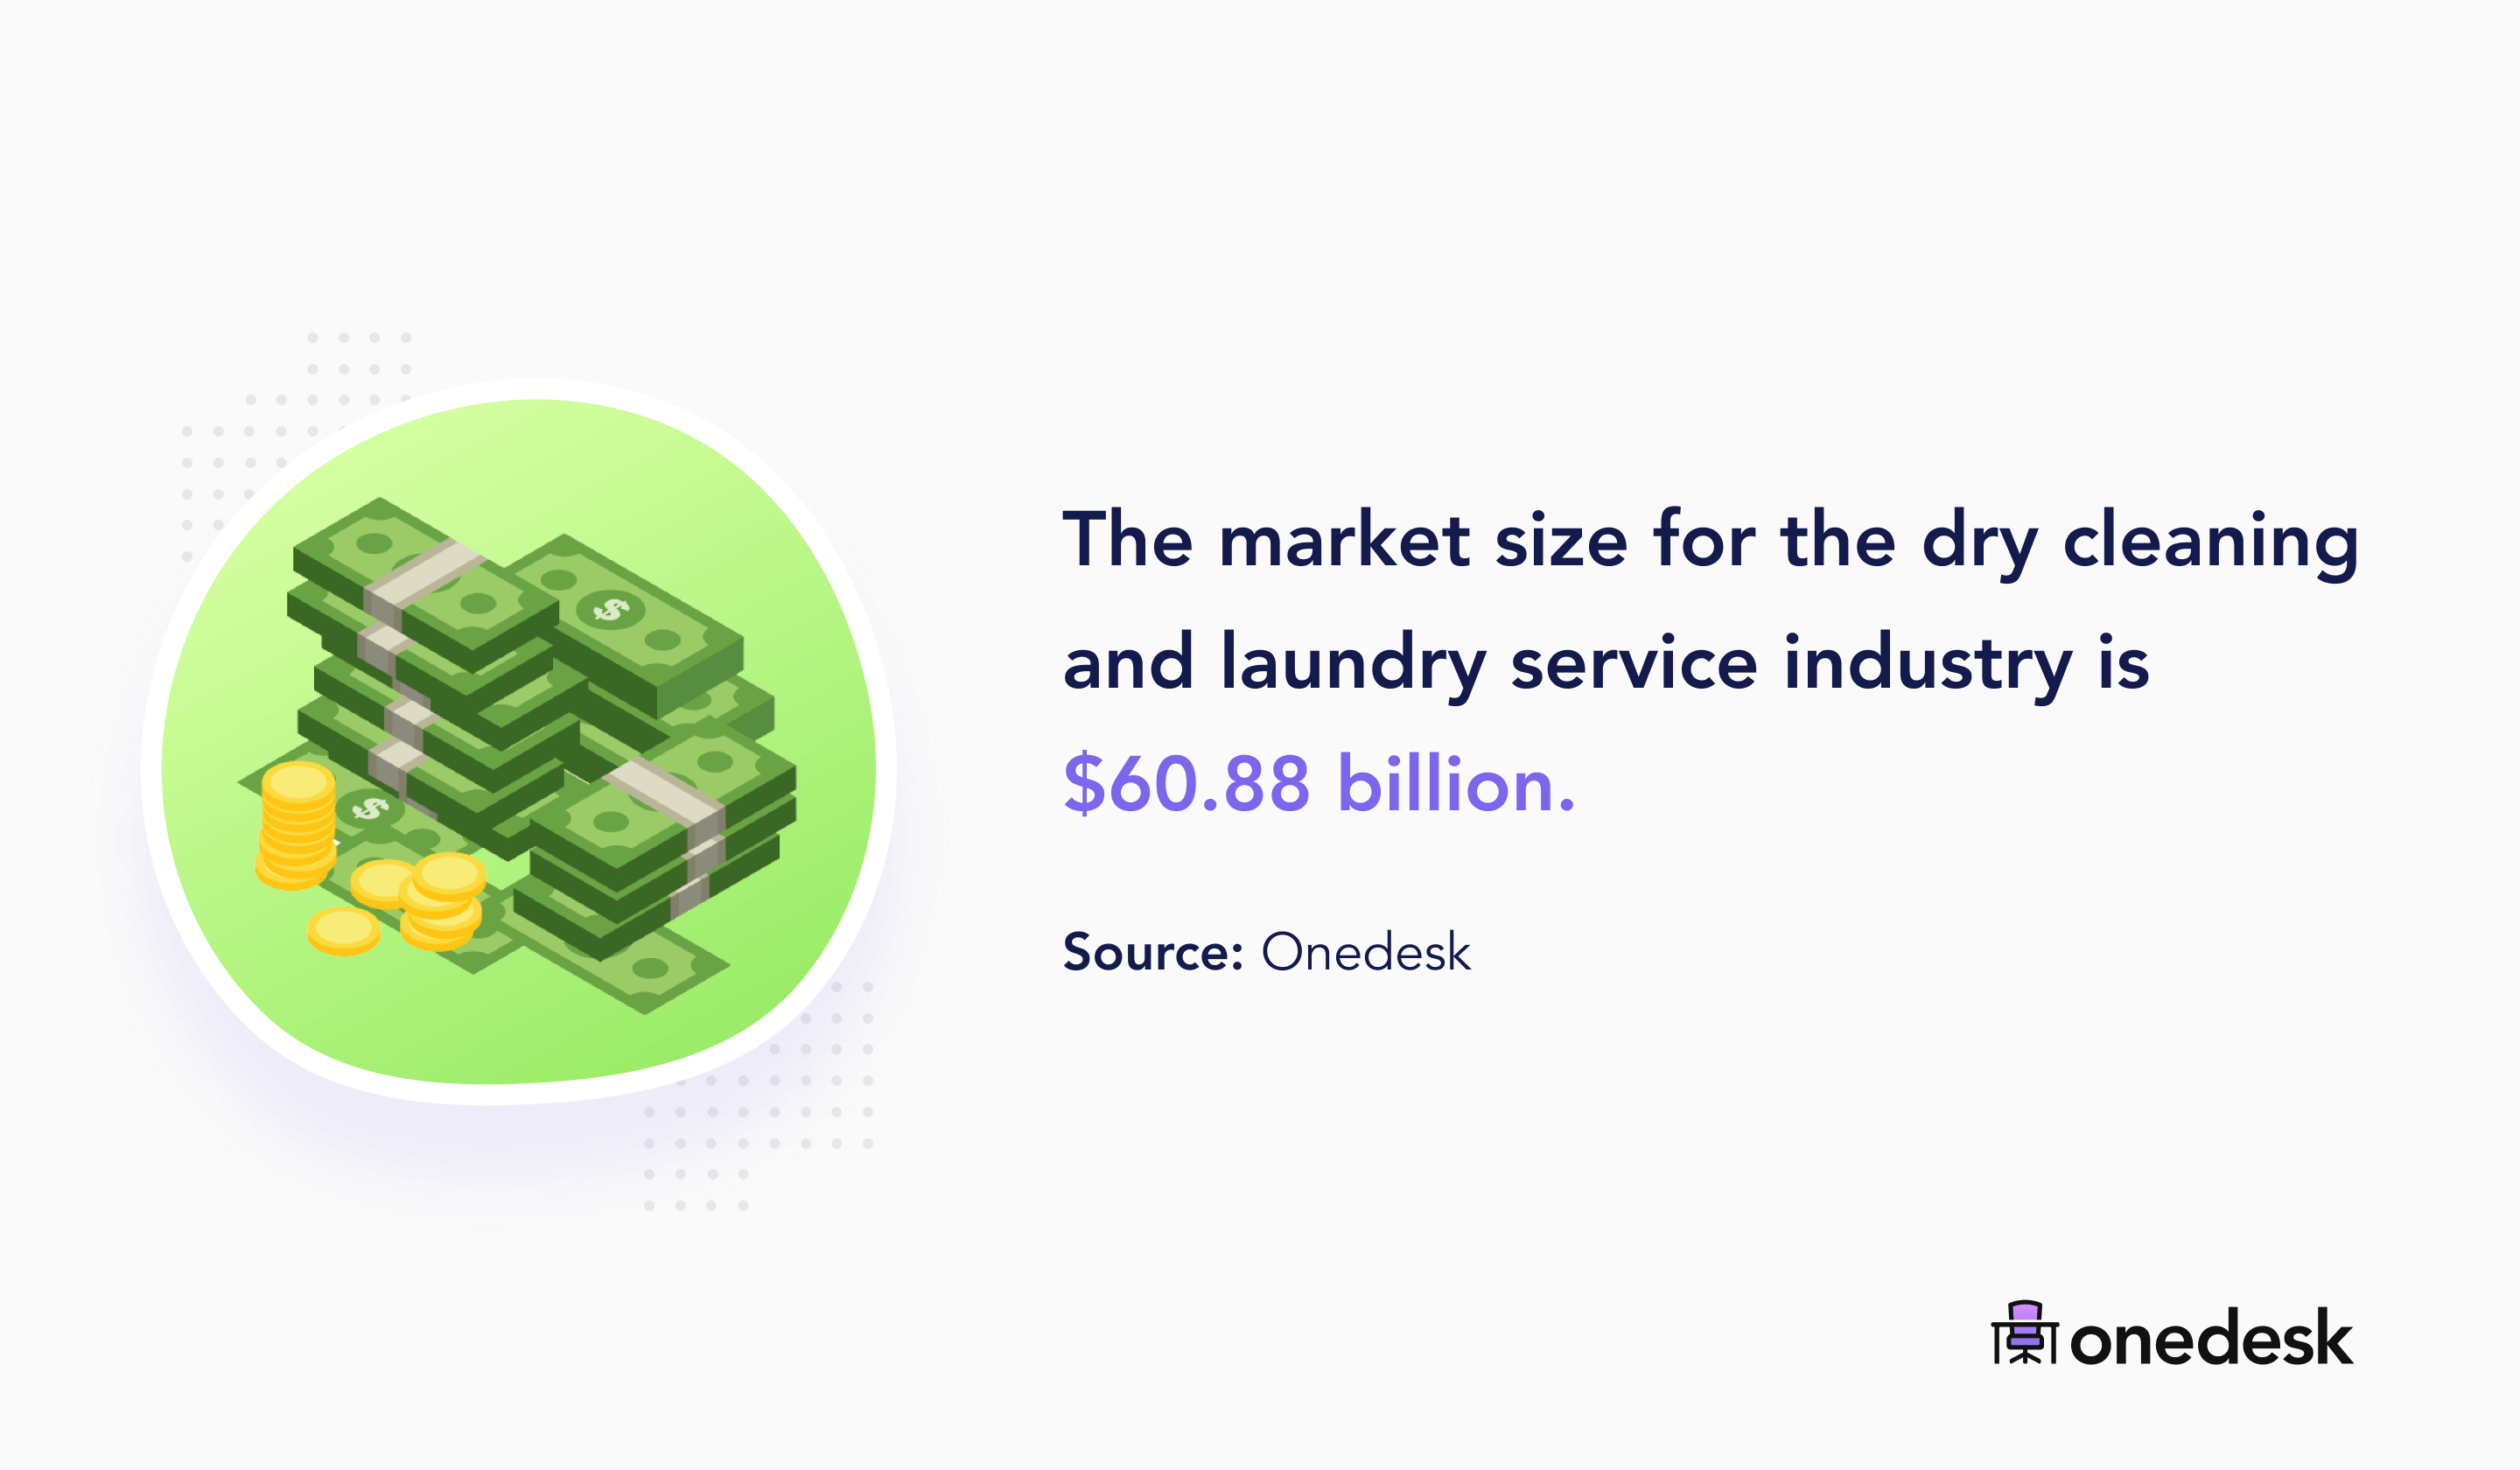 dry cleaning and laundry service industry size